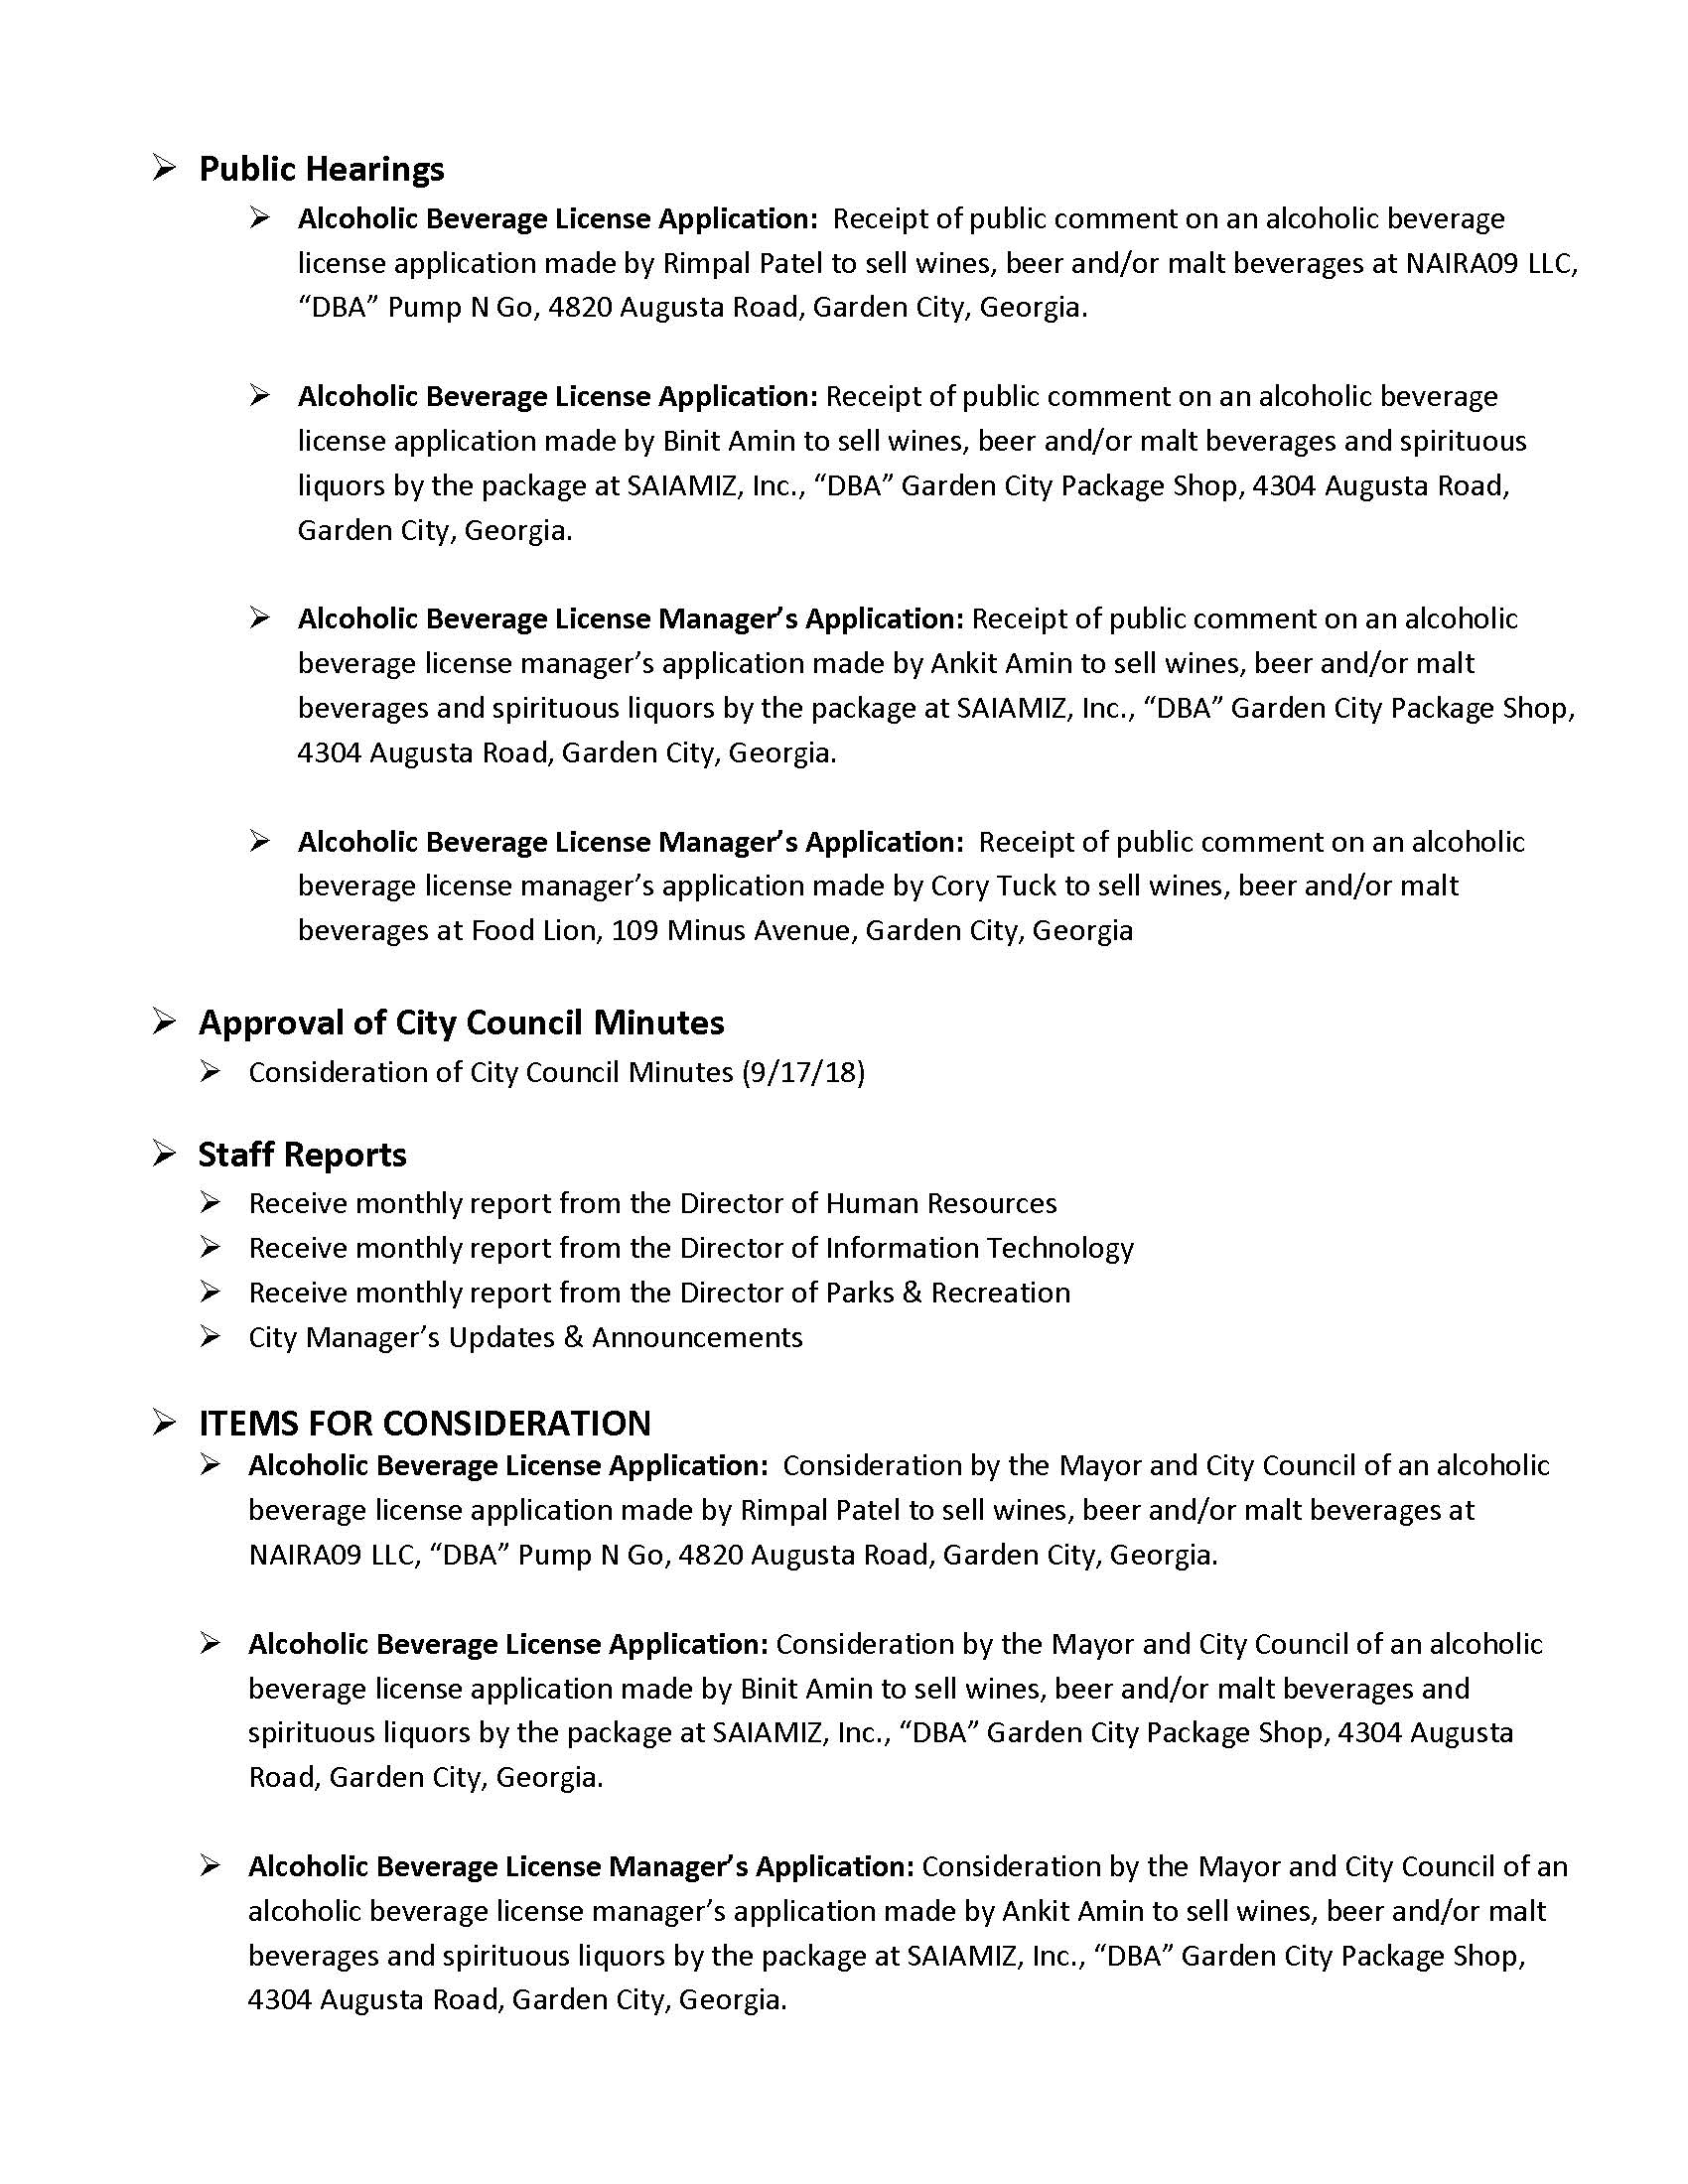 Pages from Garden City Council Agenda Packet_100118_Page_2